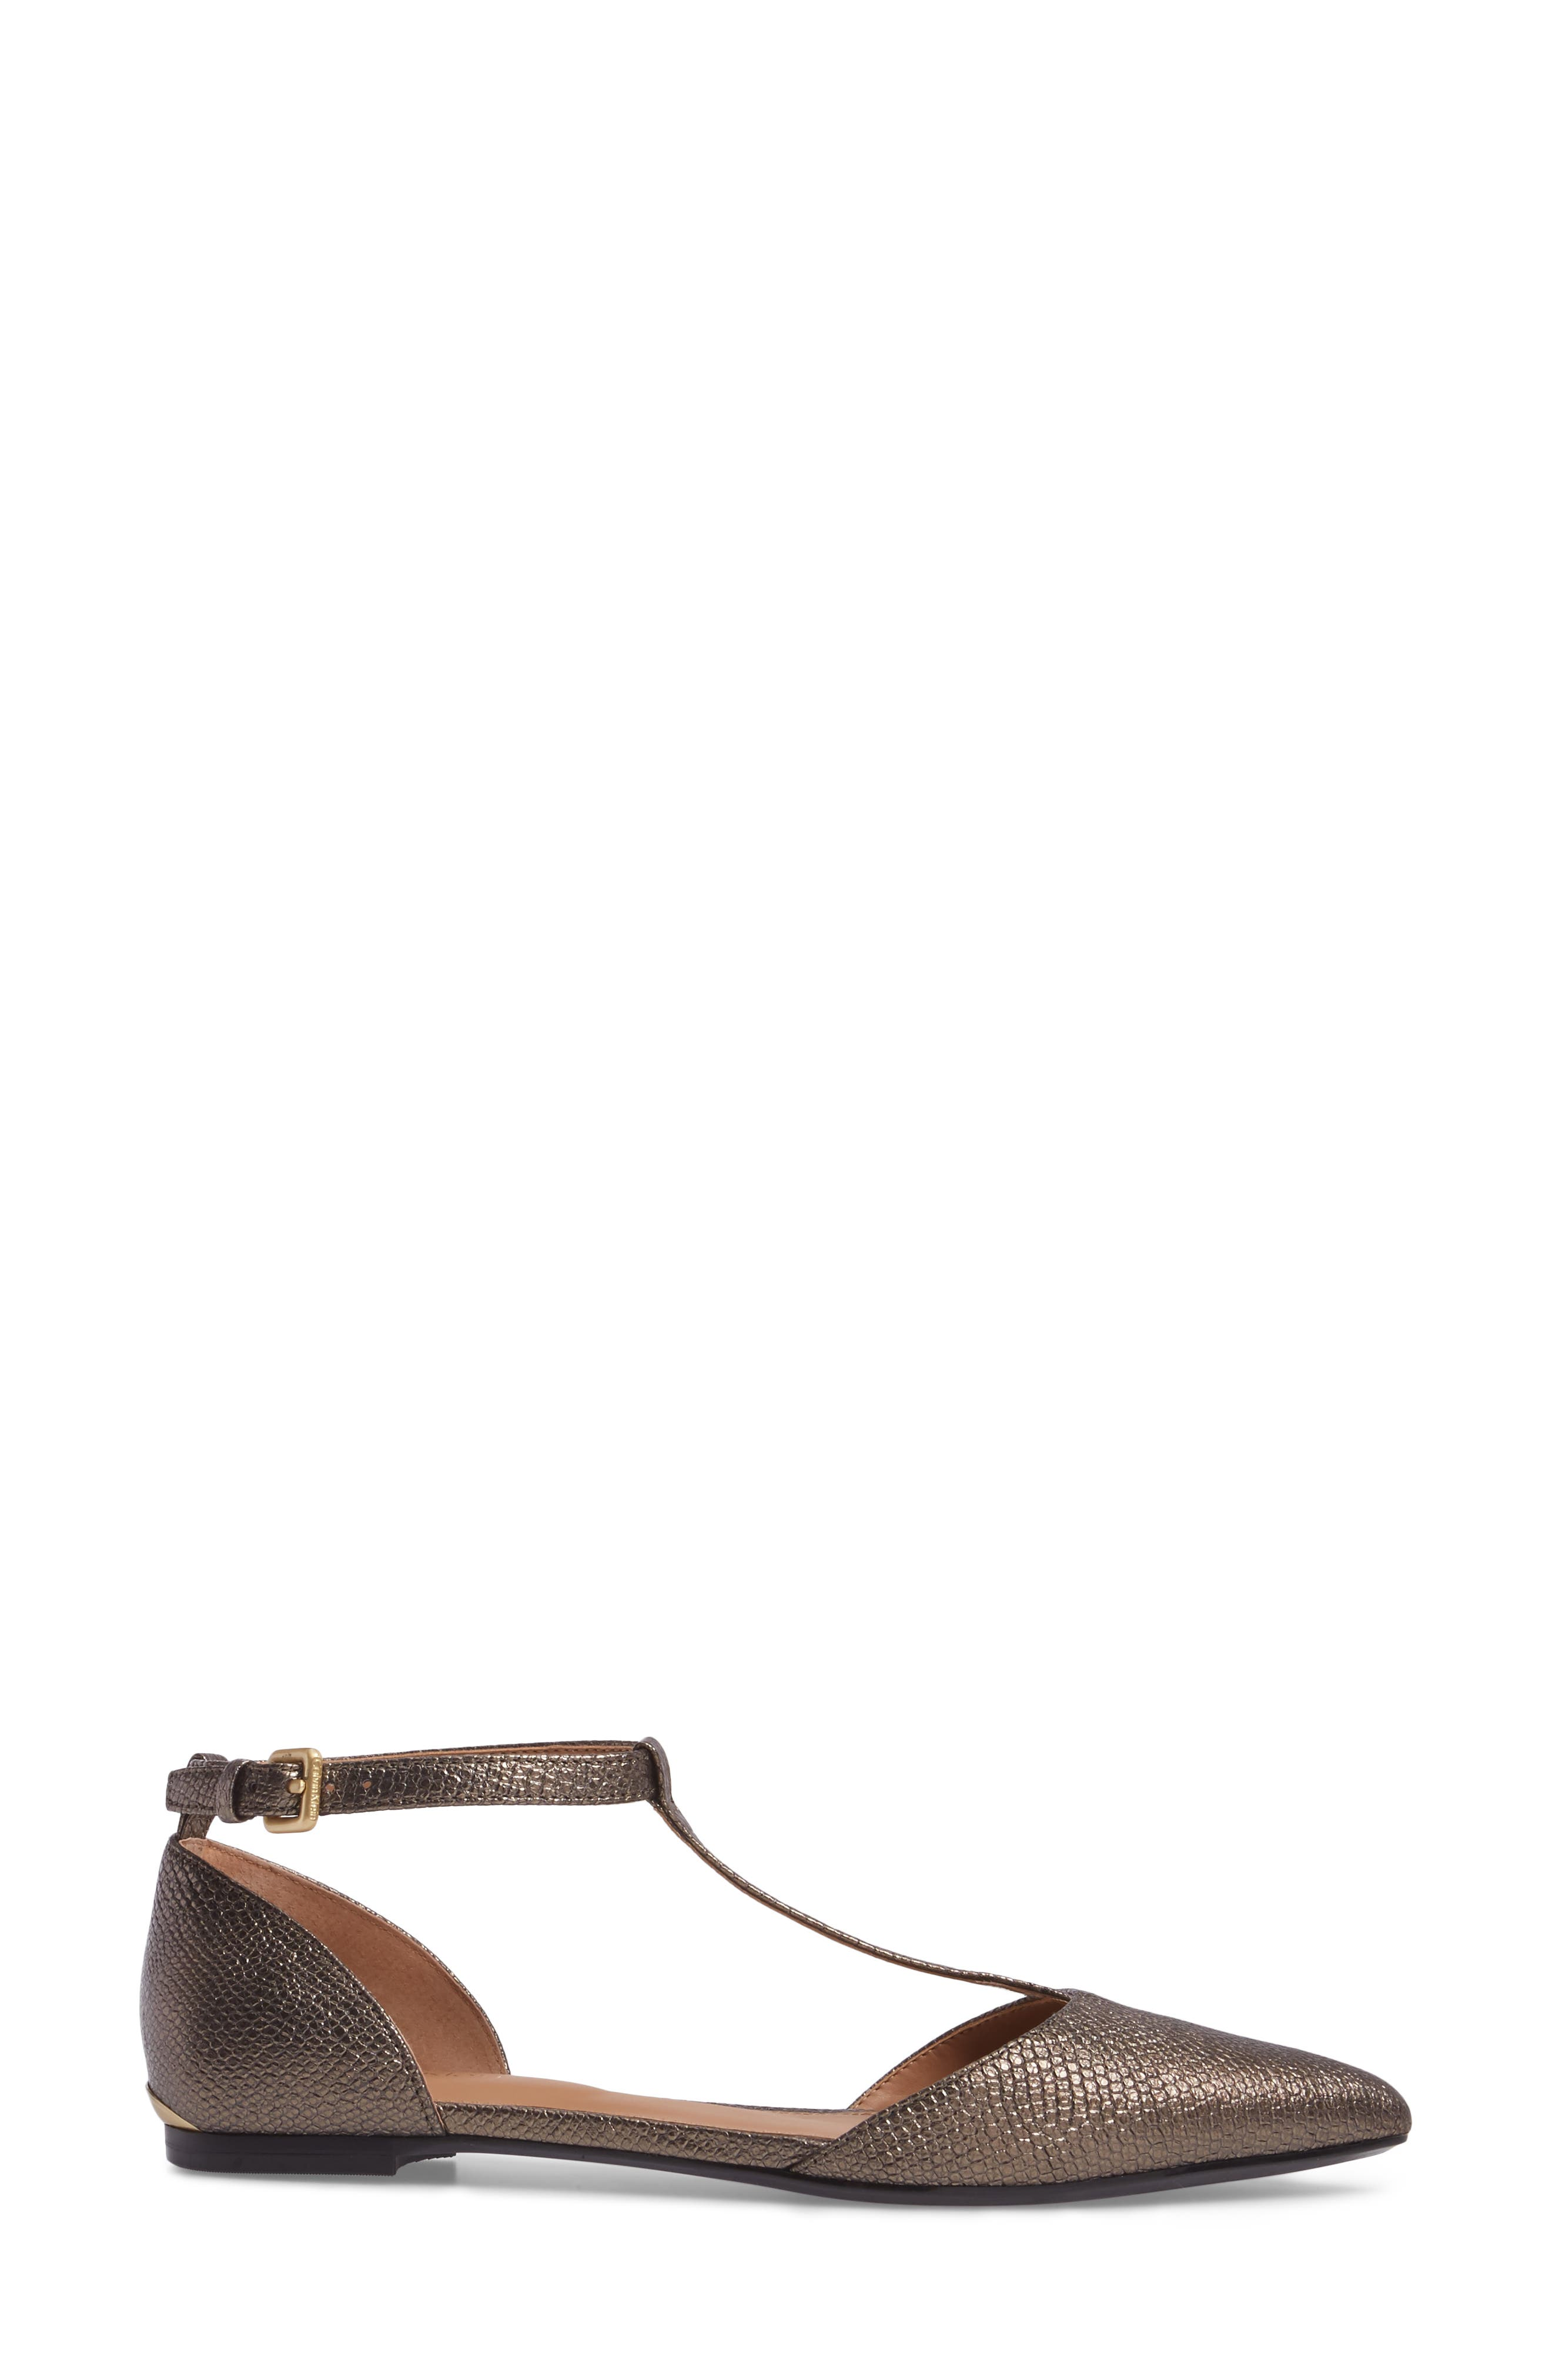 'Ghita' T-Strap Flat,                             Alternate thumbnail 3, color,                             Gold Foiled Leather